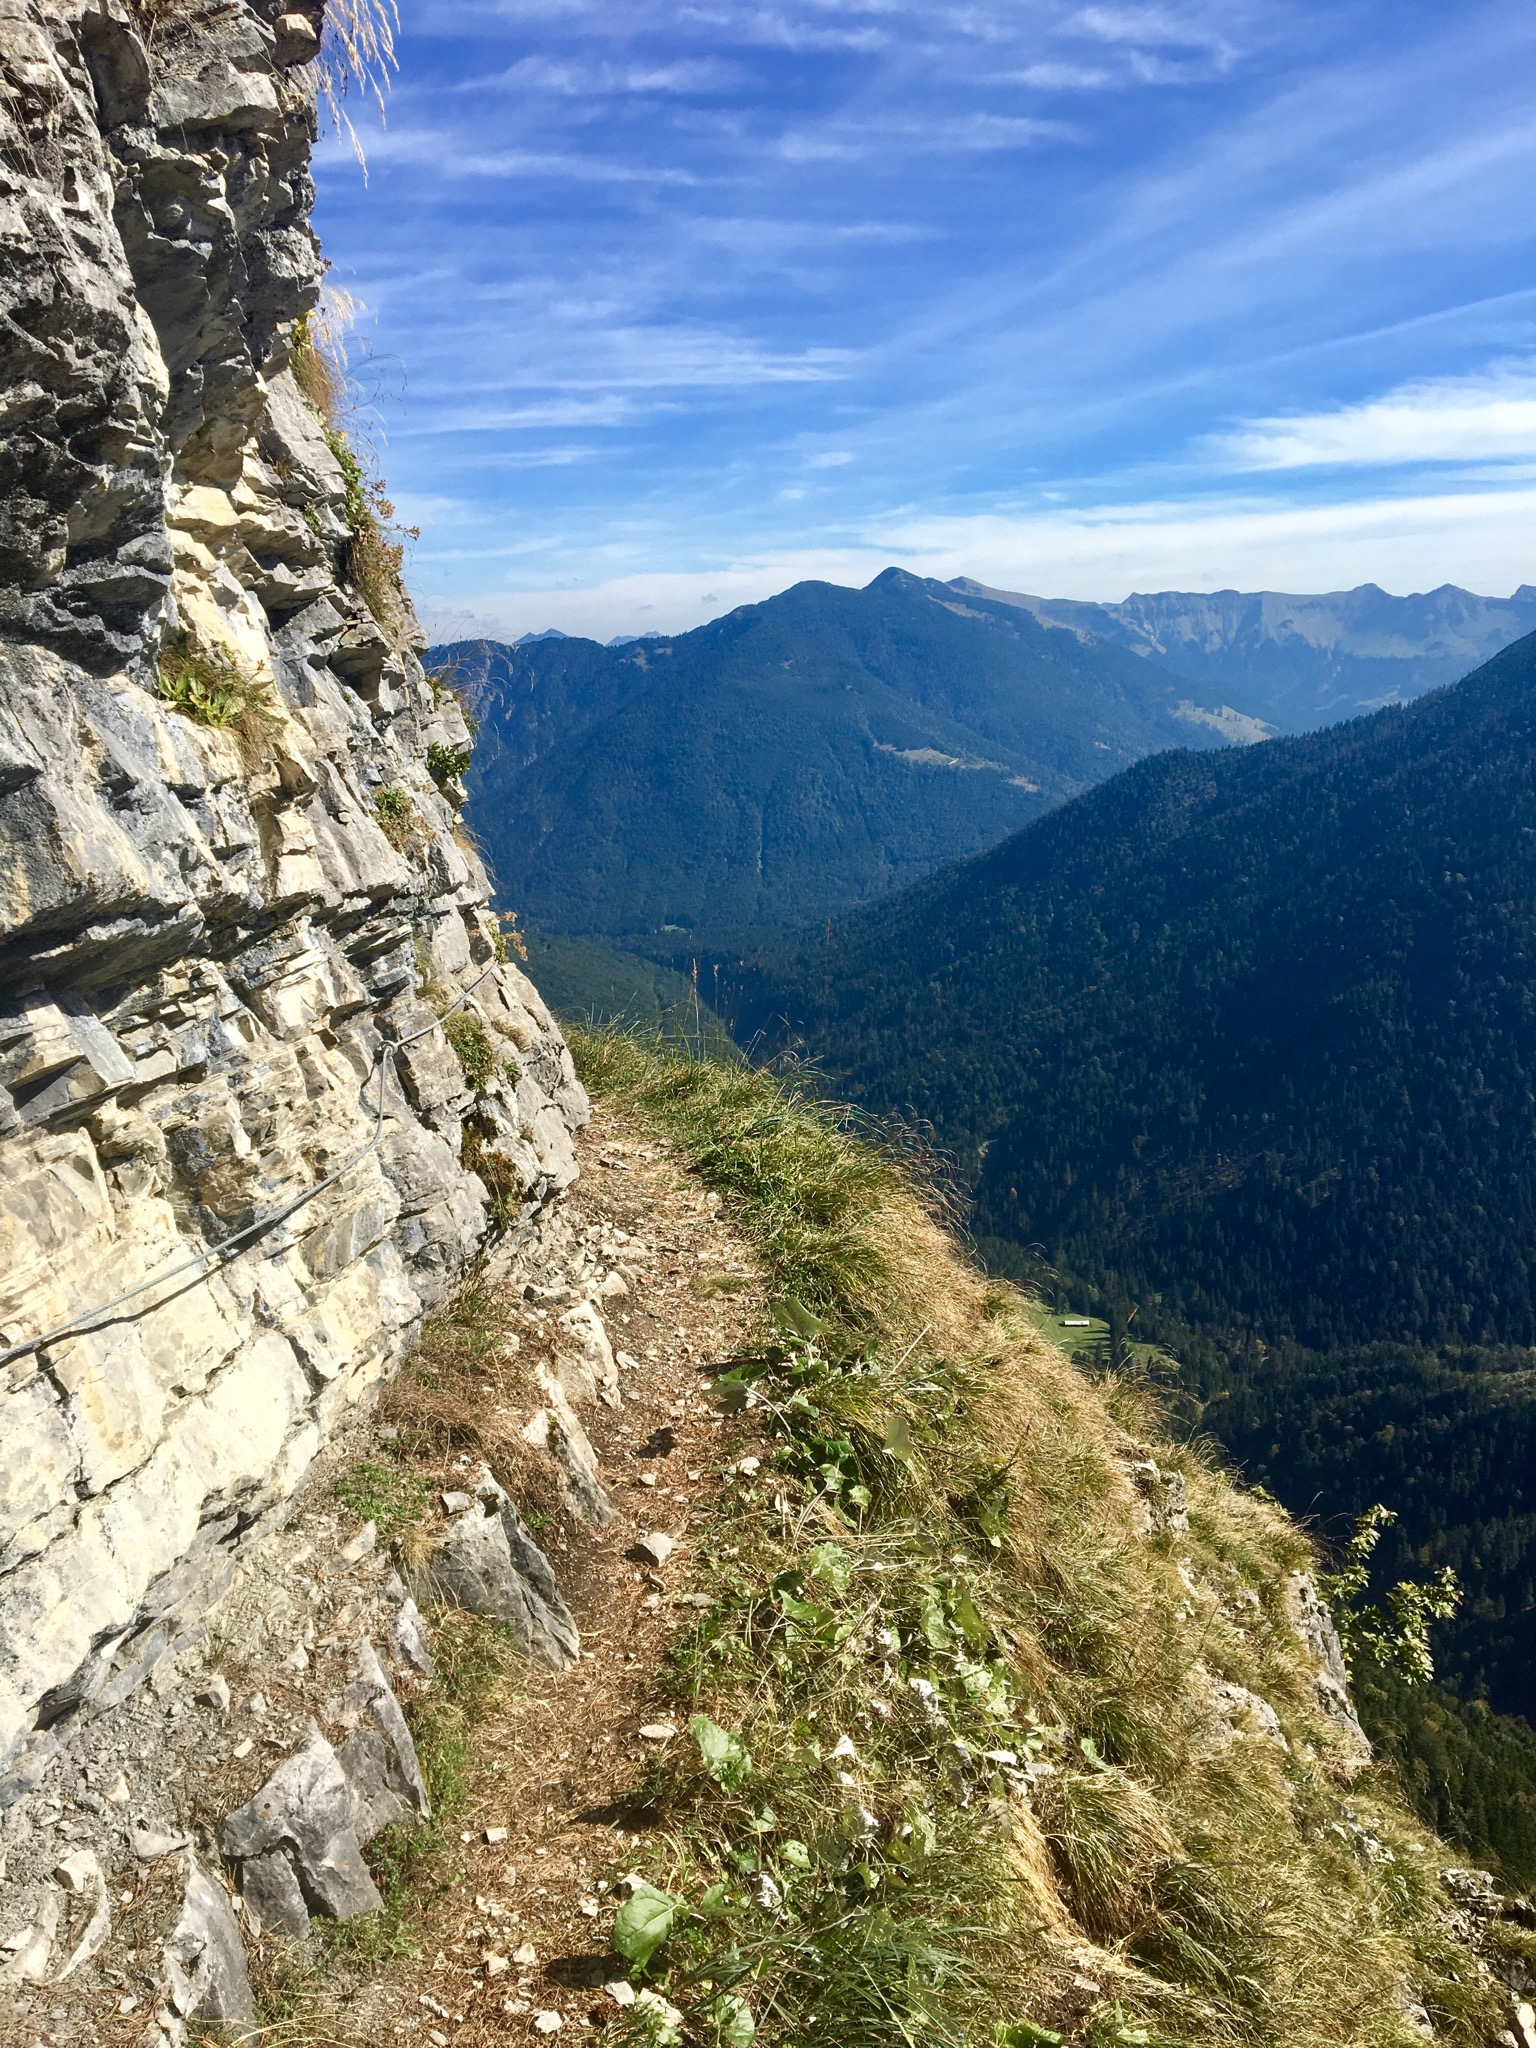 A beautiful trail through the Alps